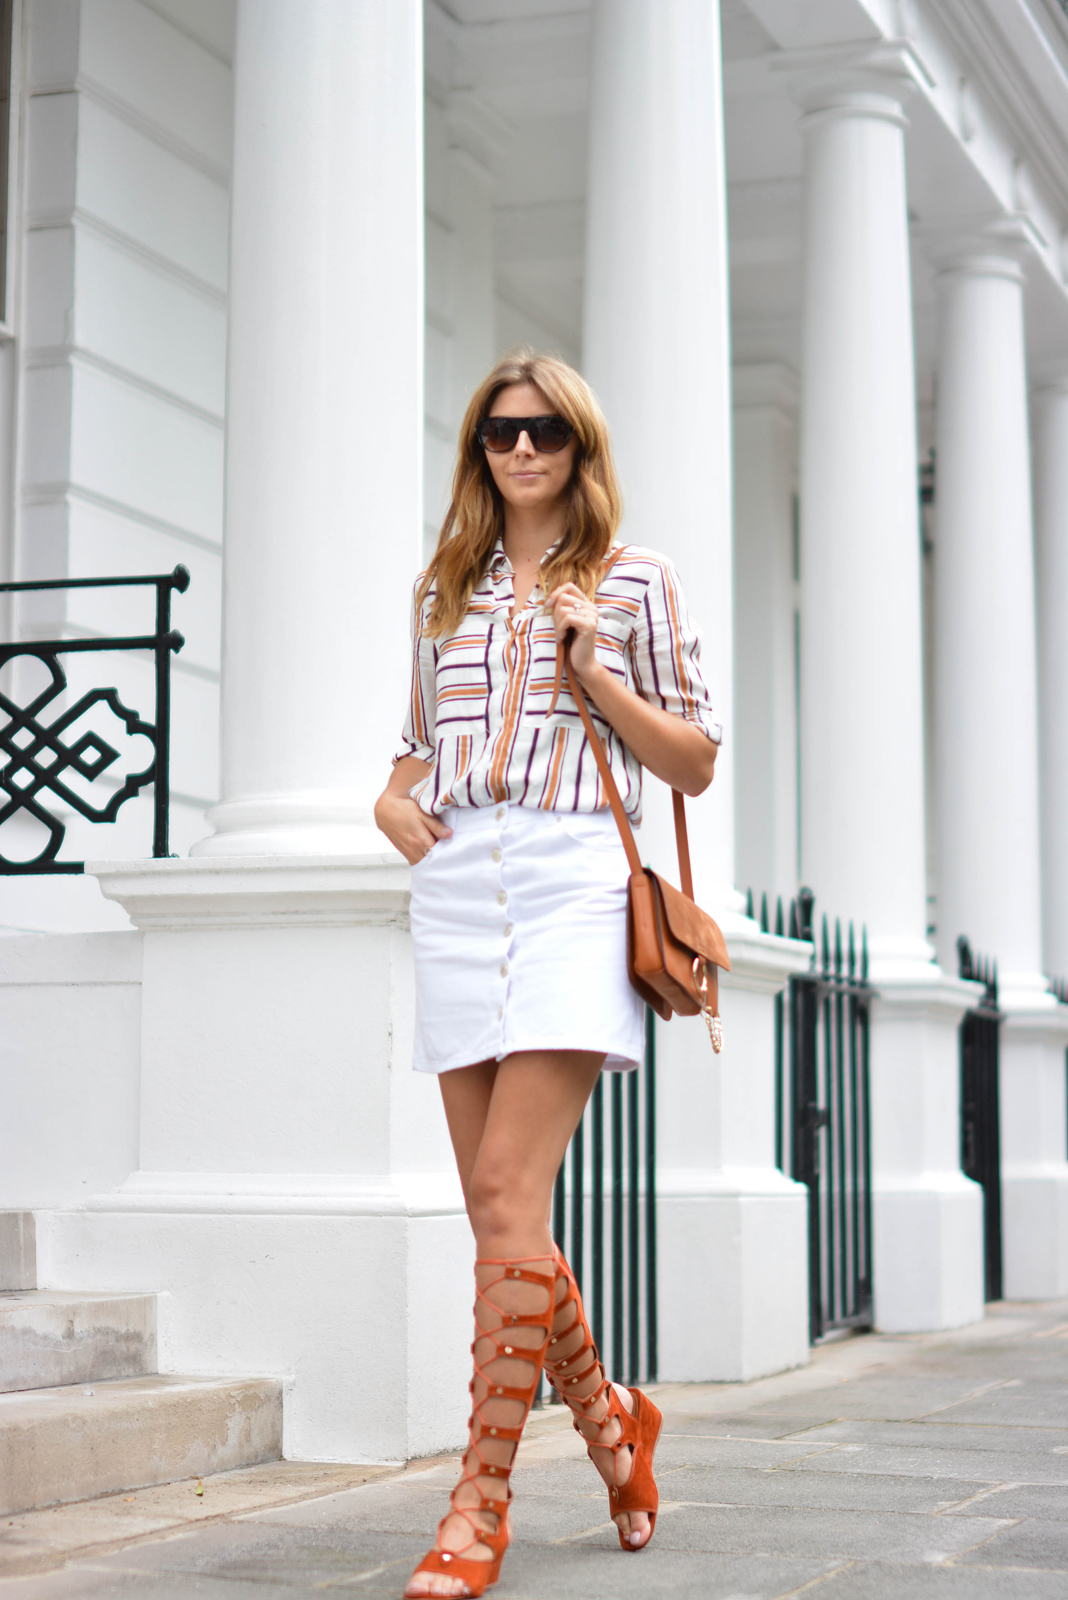 EJSTYLE wears Chloe style Tan lace up gladiator wedge sandals, White button up denim mini skirt, retro stripe shirt, Tan suede leather chloe style Faye bag, OOTD